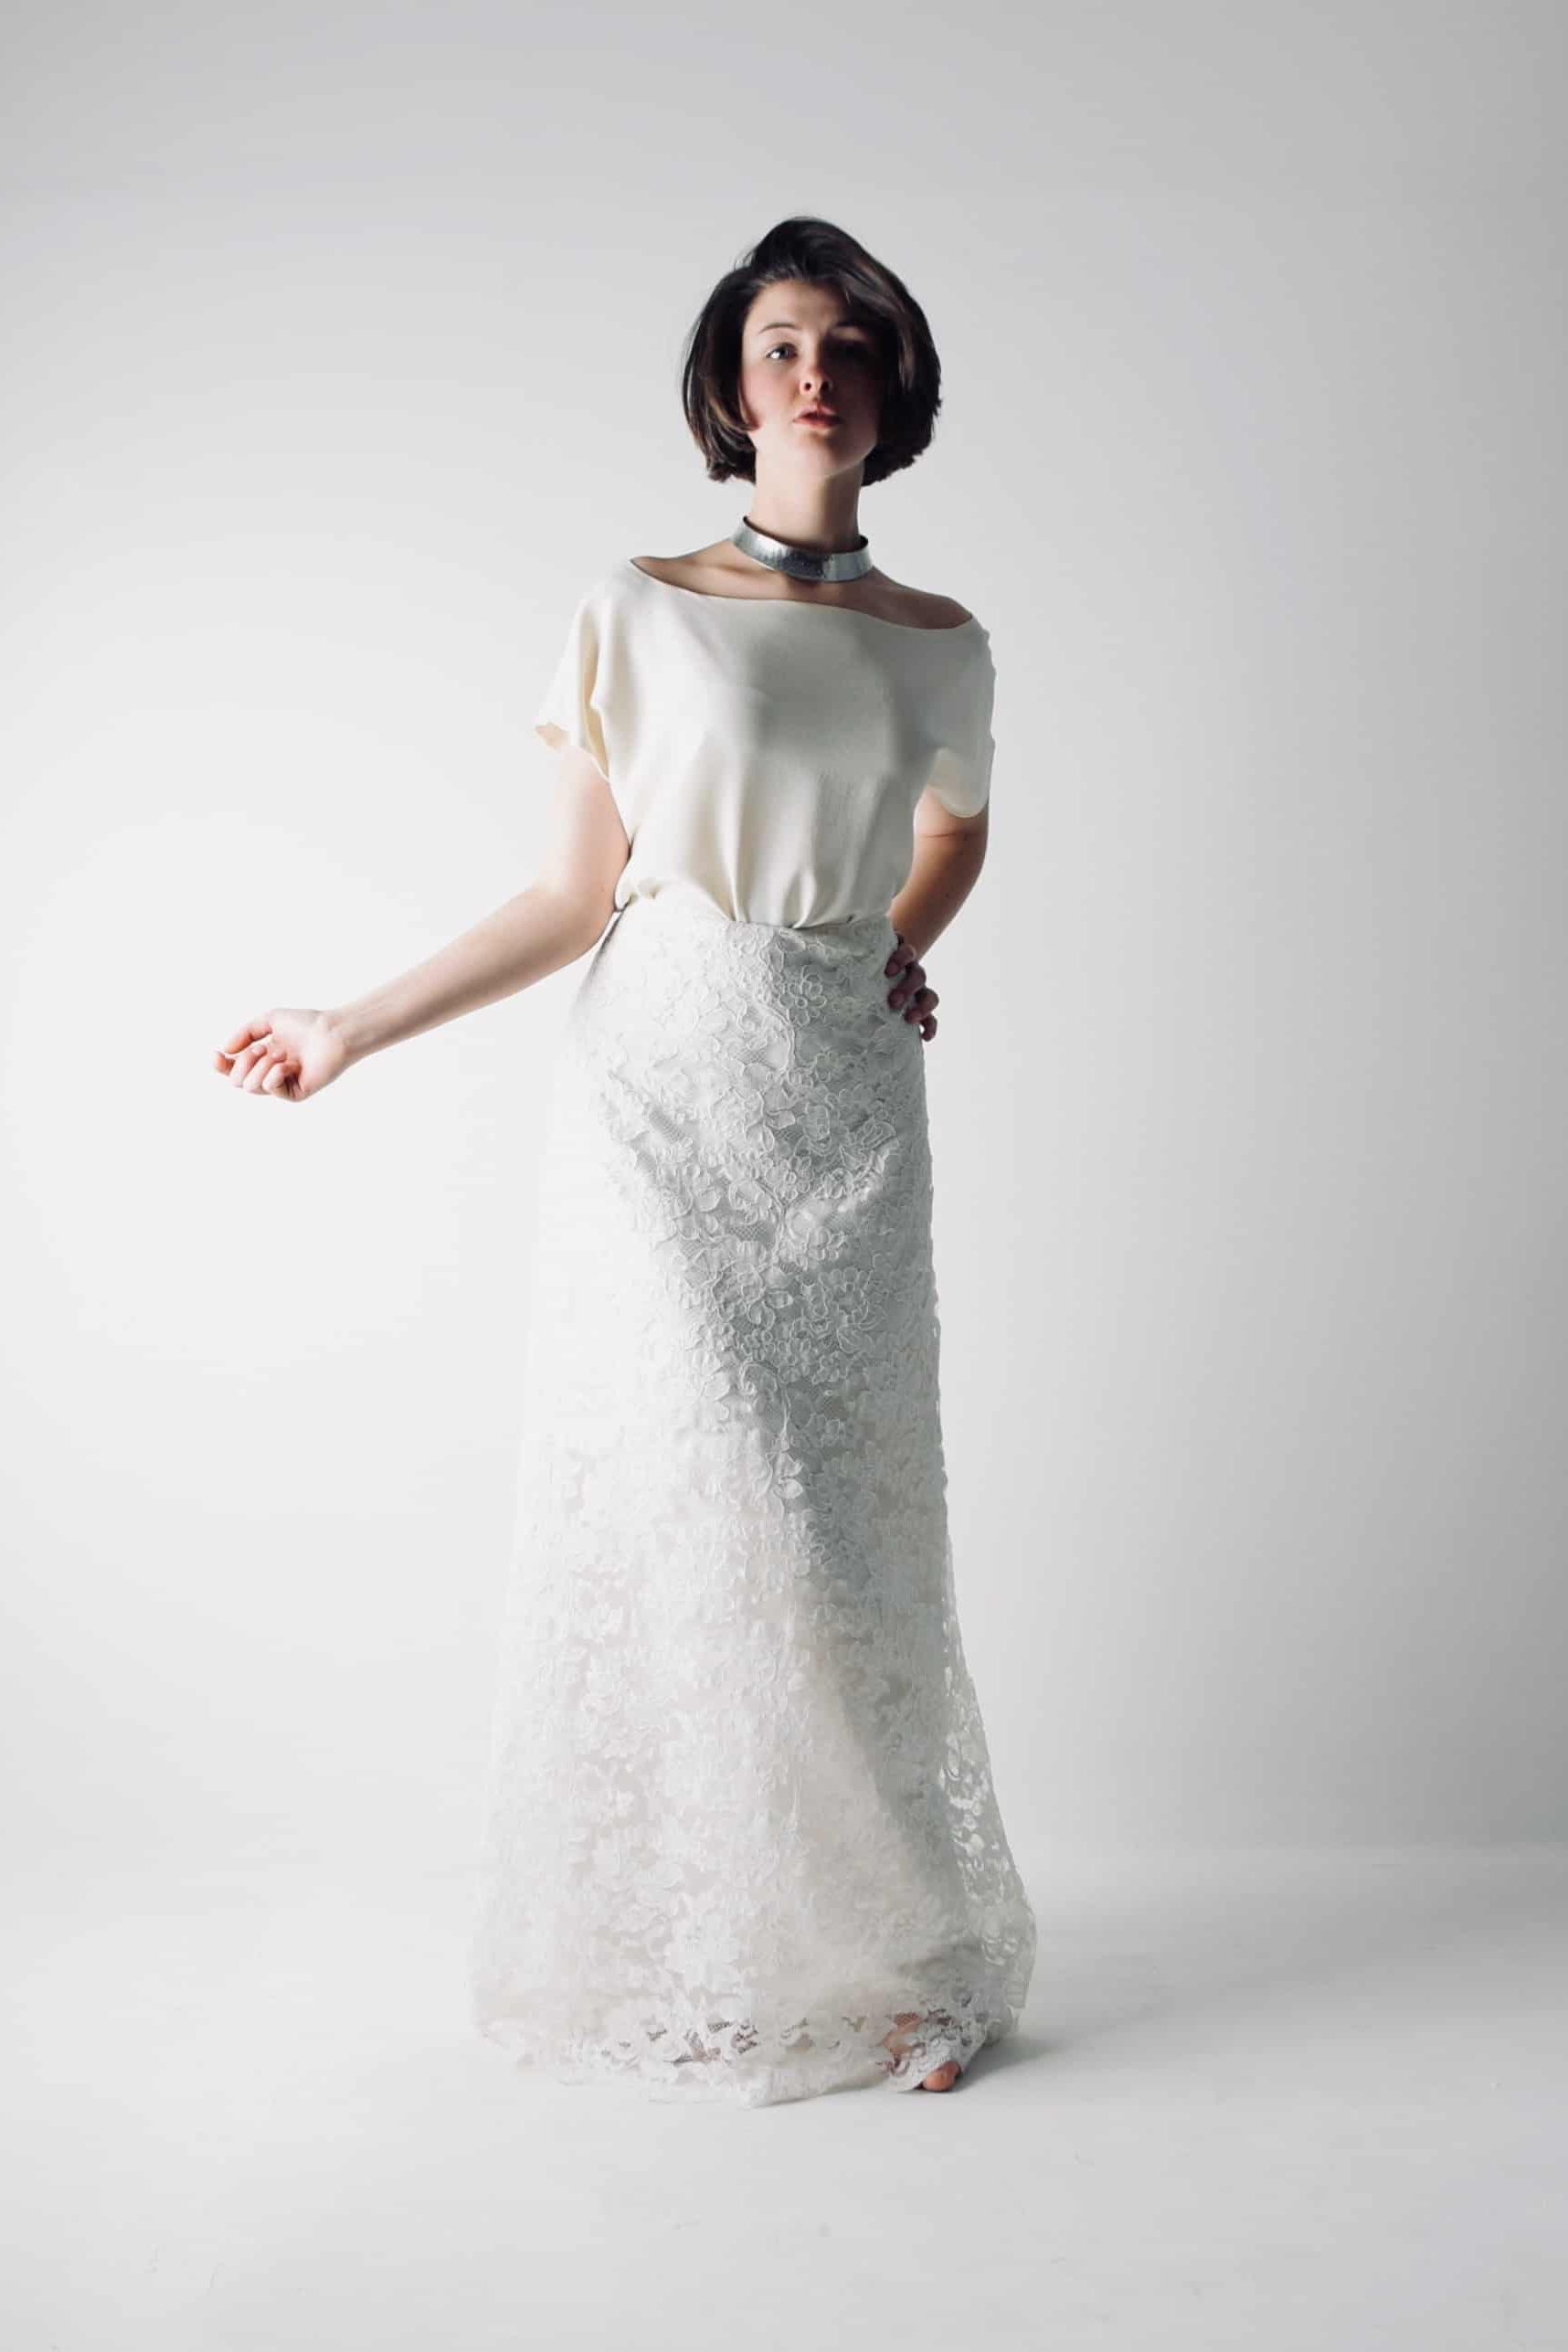 901d785d35ee Minimalist lace and silk two piece wedding dress. Wedding dress ideas, lace  skirt and short sleeve top in white. 2019 bridal trends.